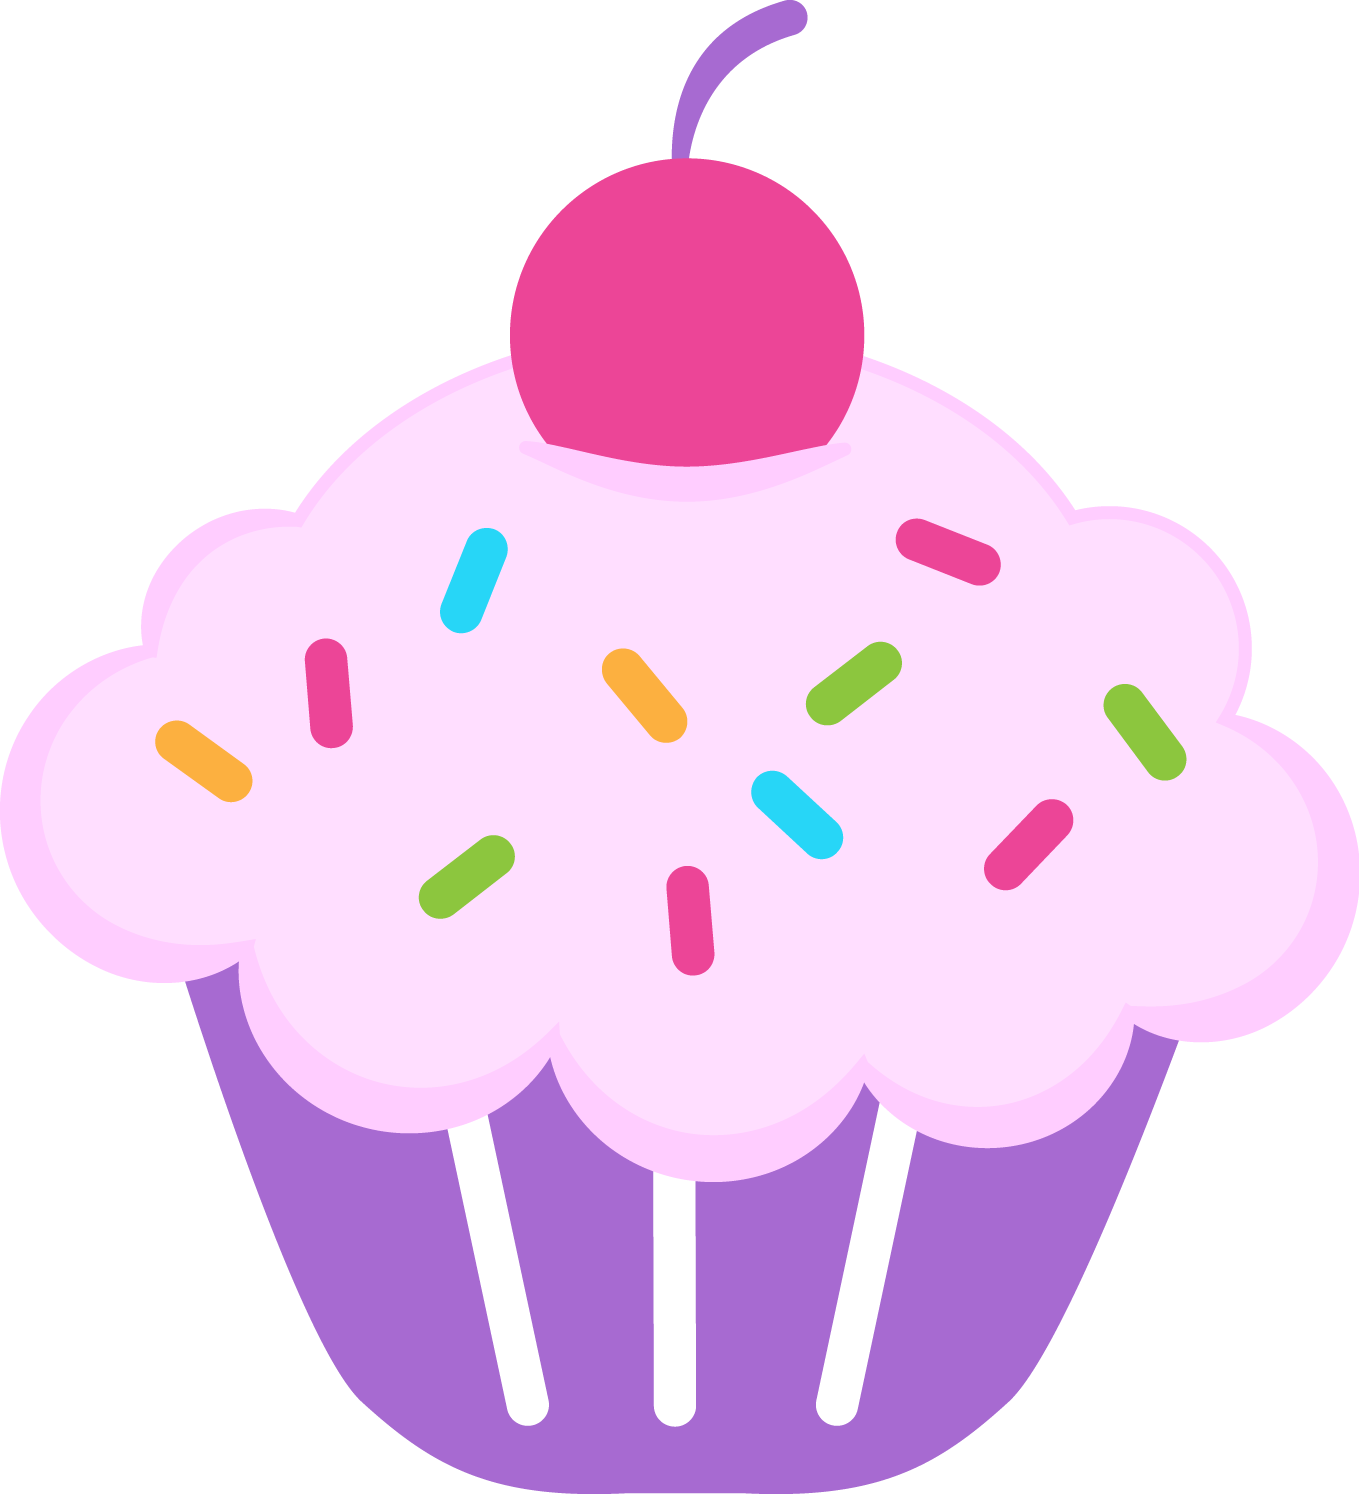 Lovely Girls: Cupcakes em PNG.